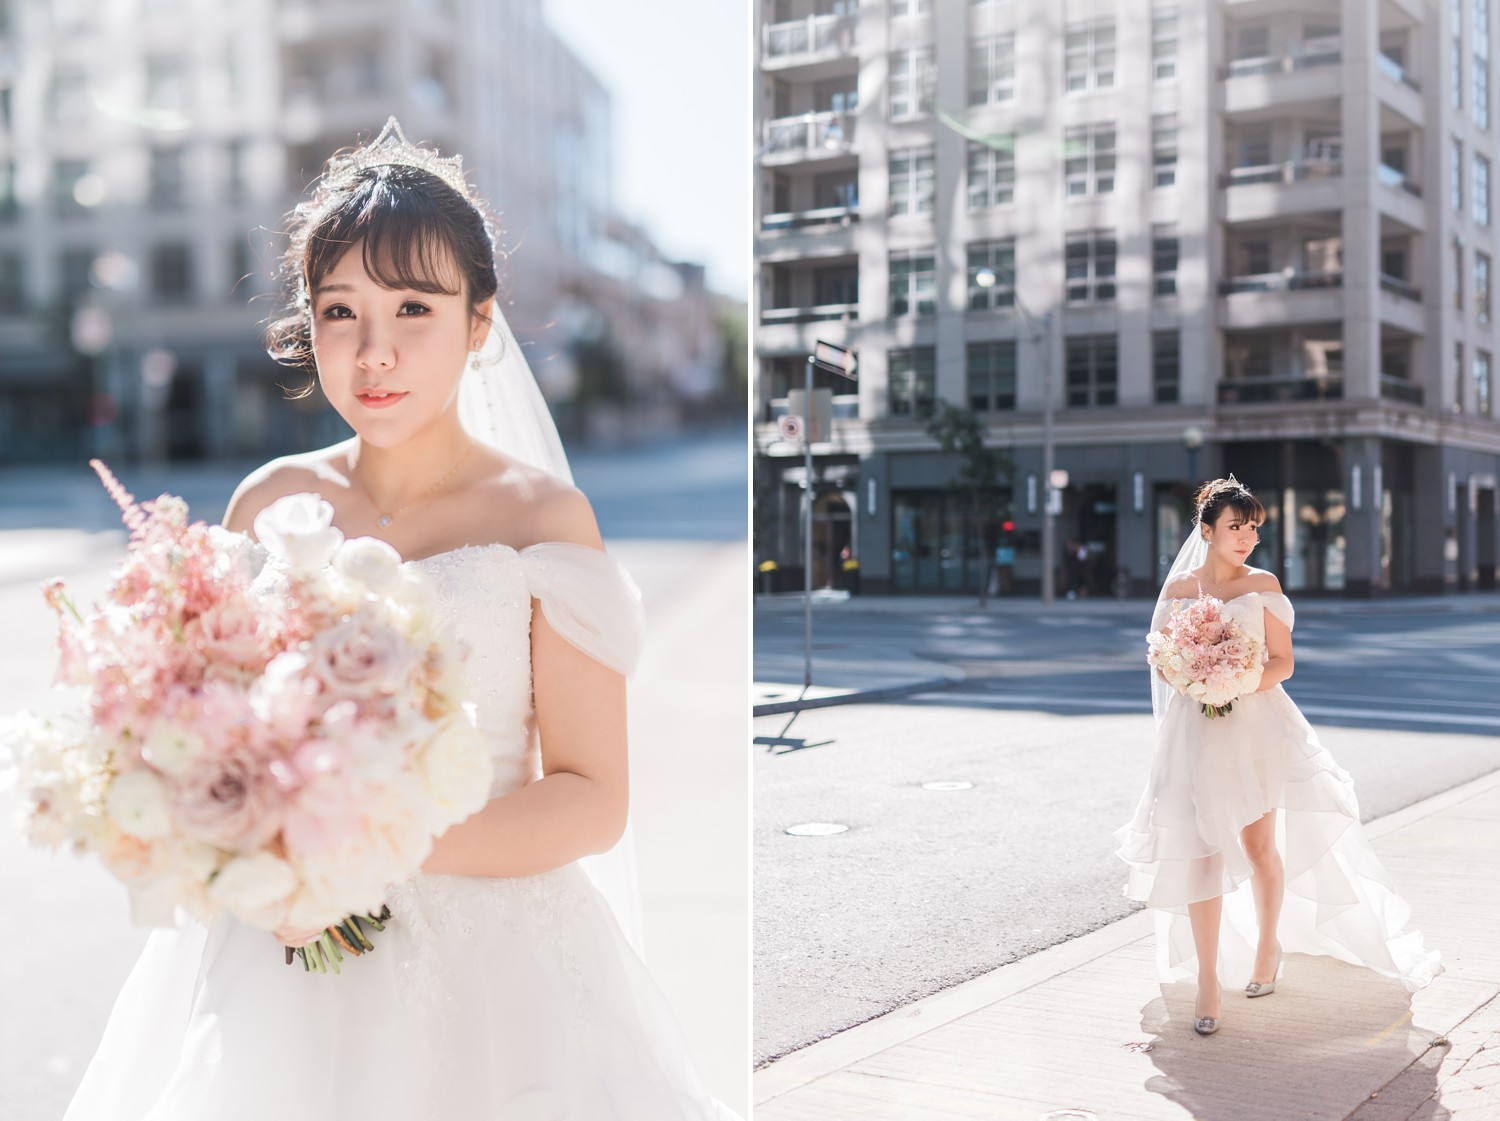 Bridal Portraits at Luxury Yorkville Vinci Toronto Four Season Hotel Wedding Photos with Chinese Bride and Groom